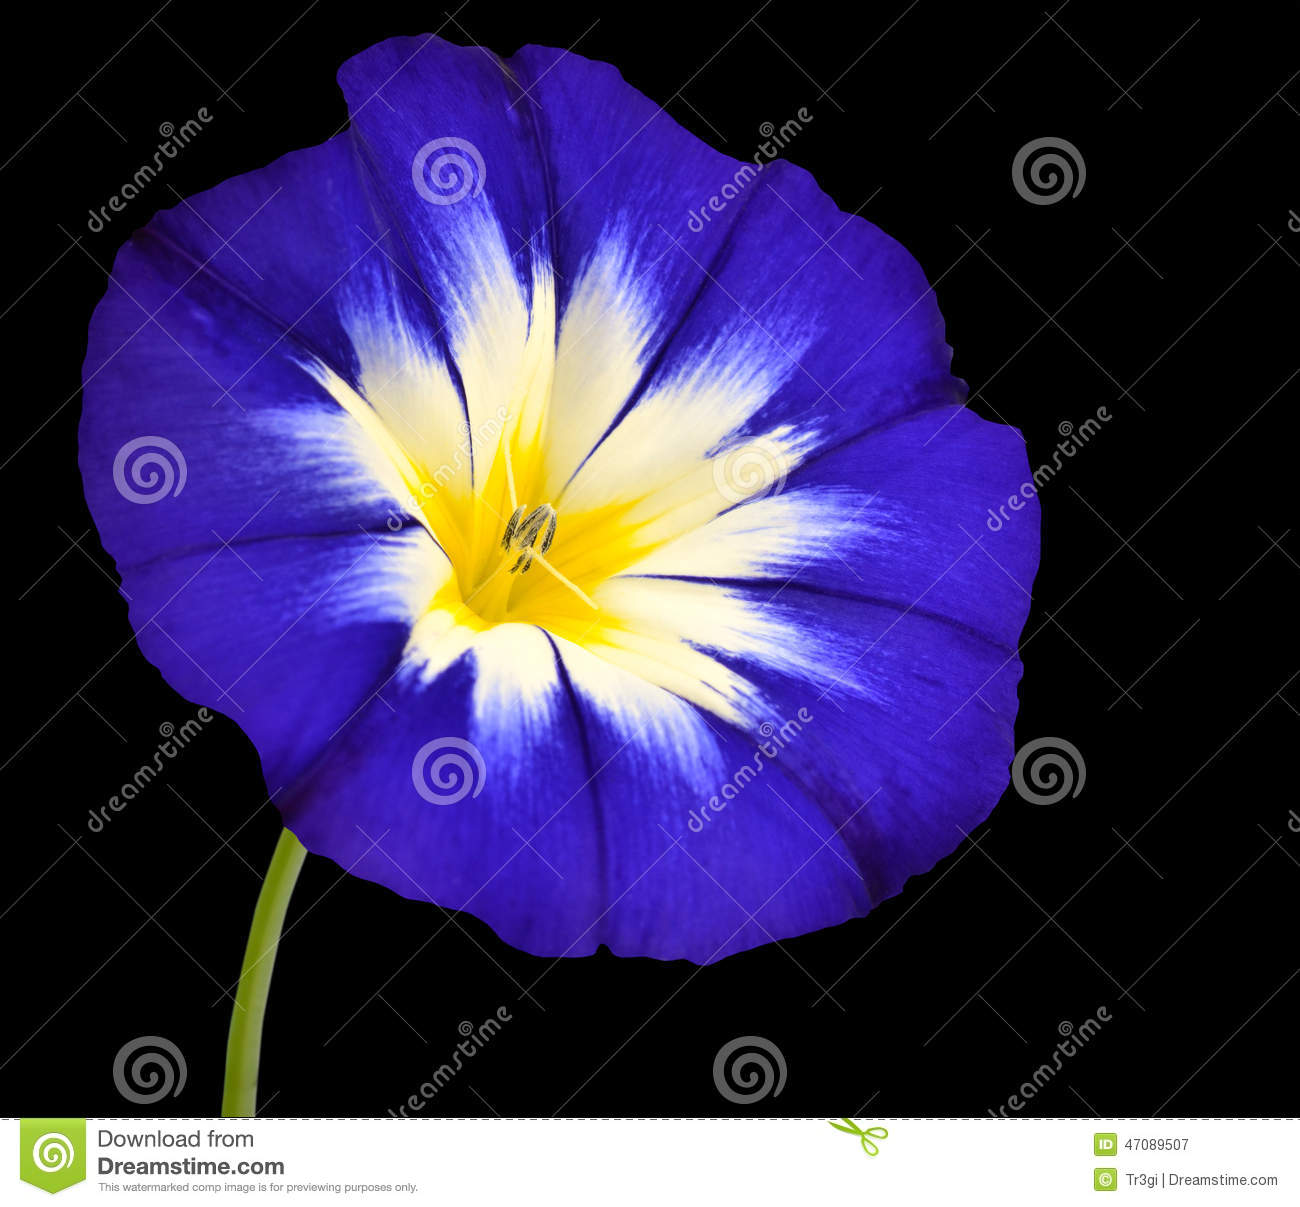 Blue flower with white yellow star center isolated stock image blue flower with white yellow star center isolated mightylinksfo